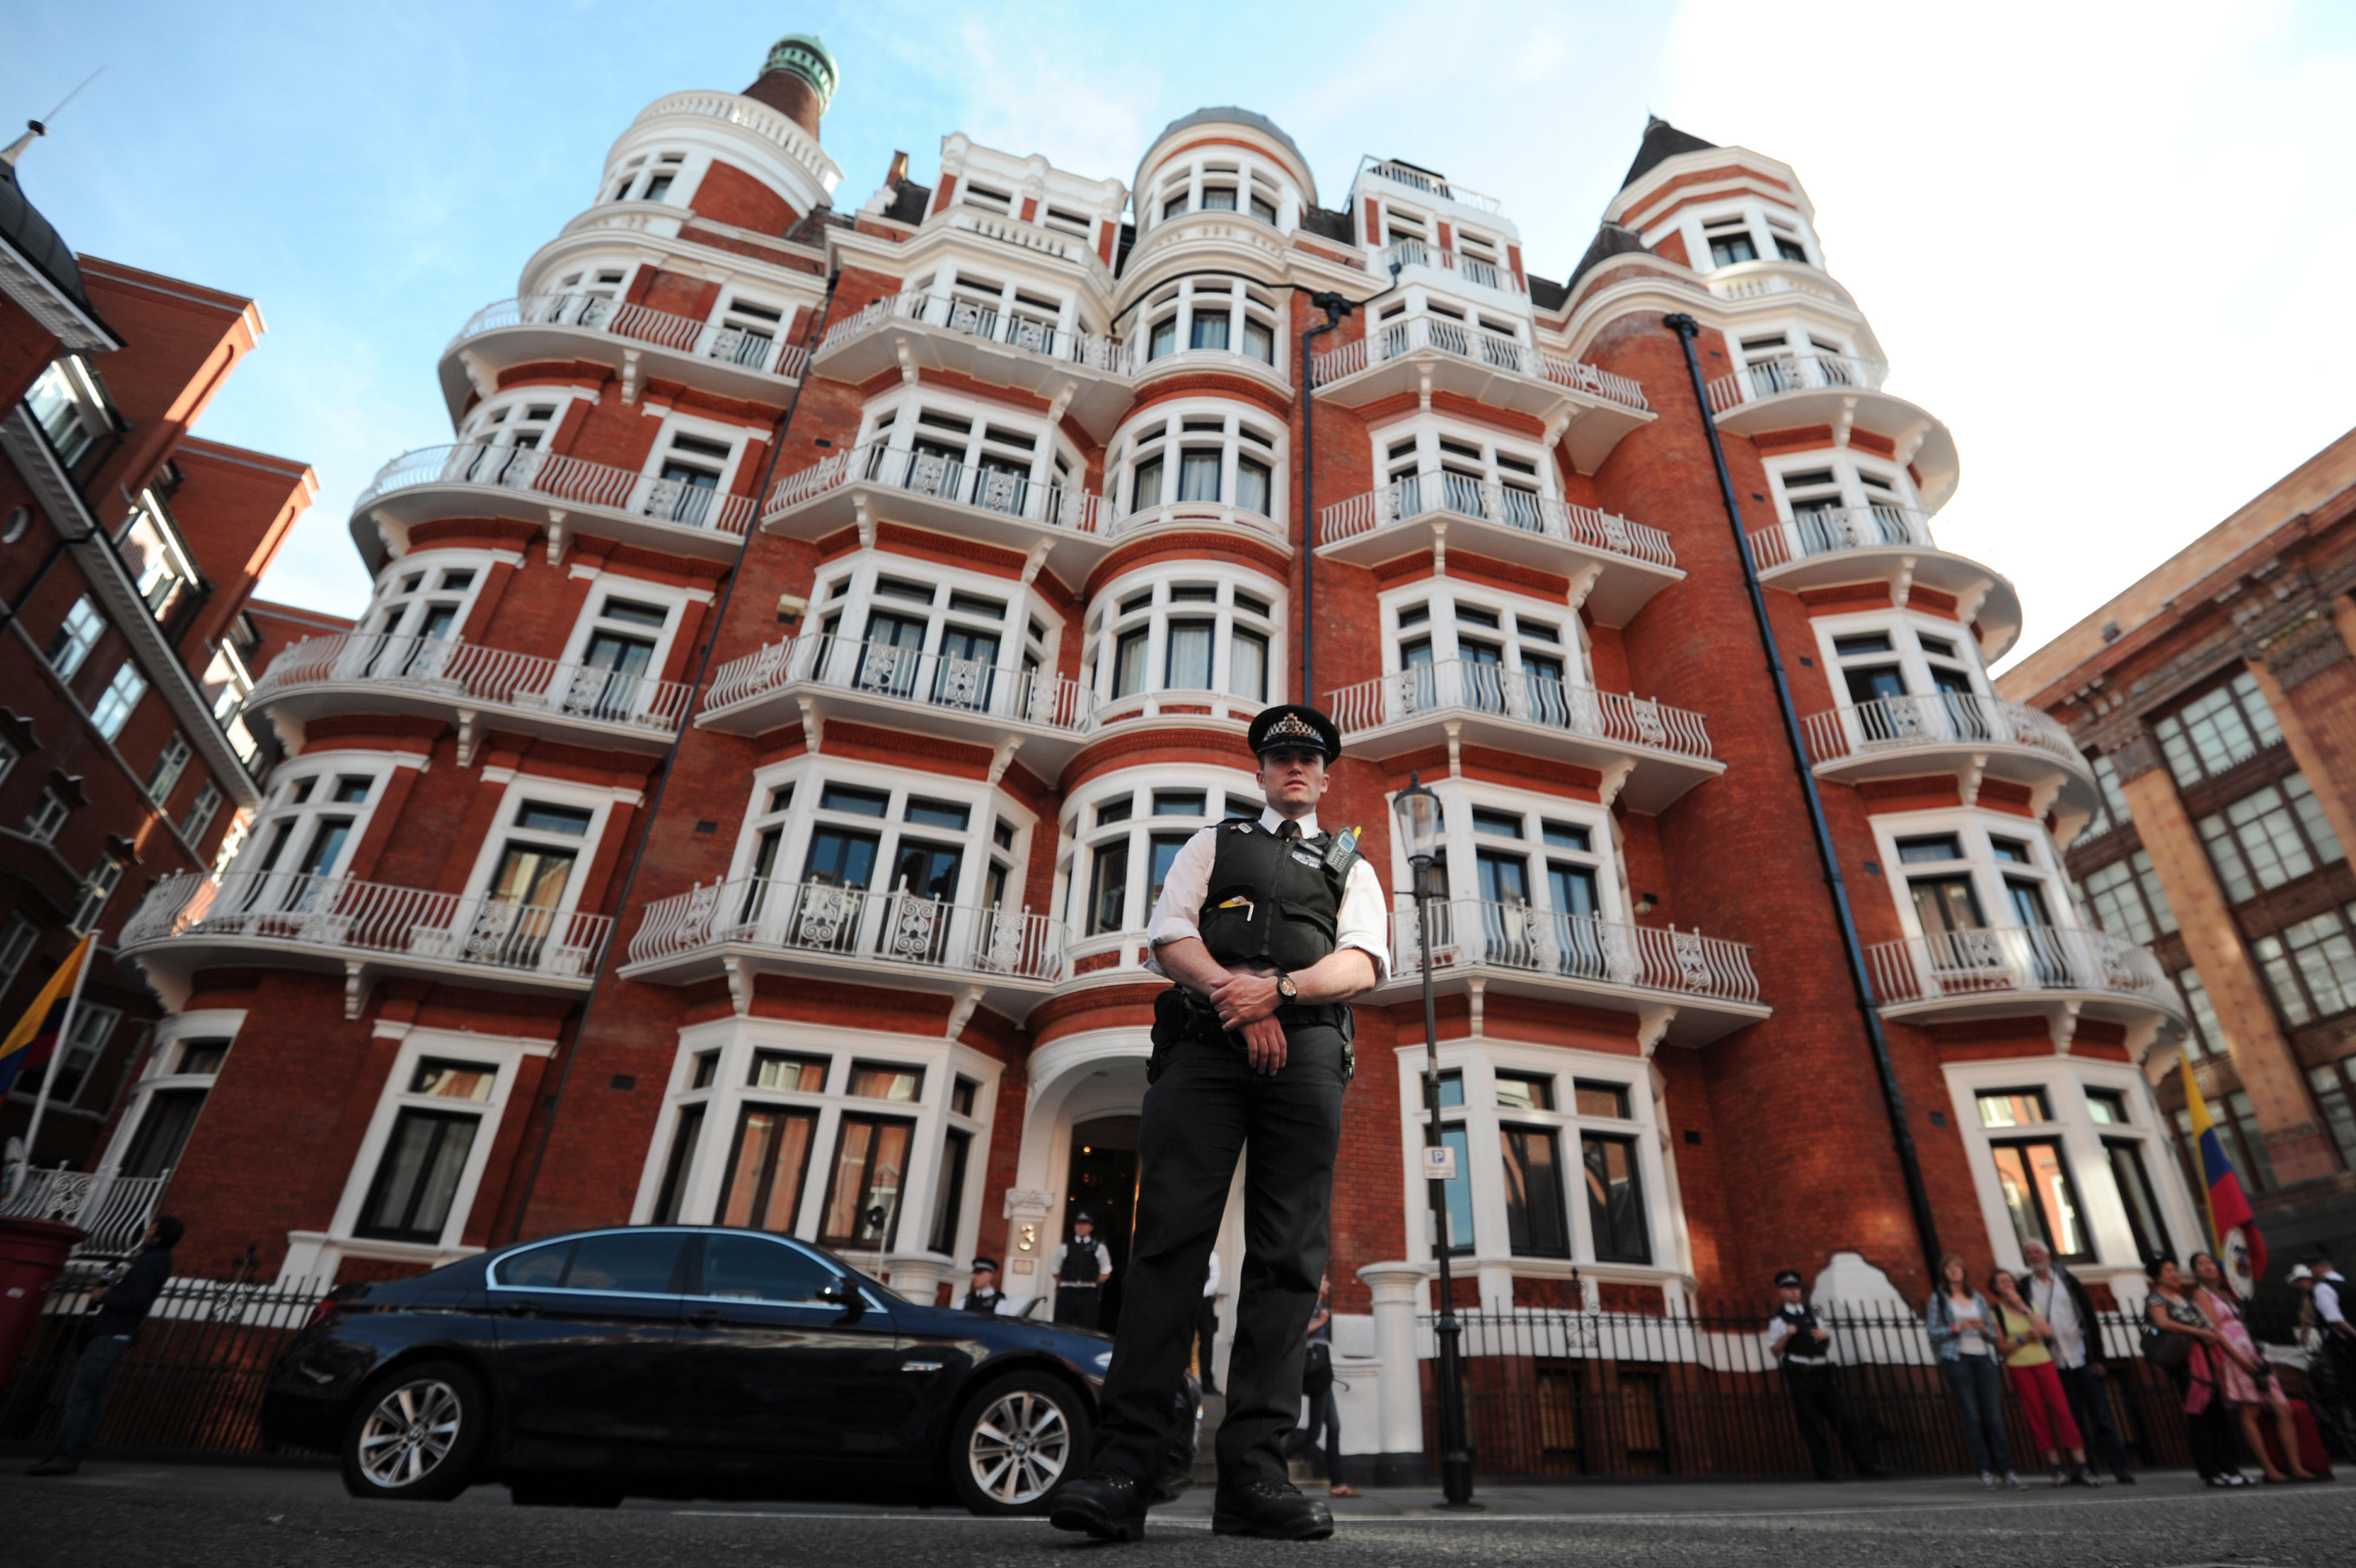 A police officer stands outside the Ecuadorian Embassy in London.